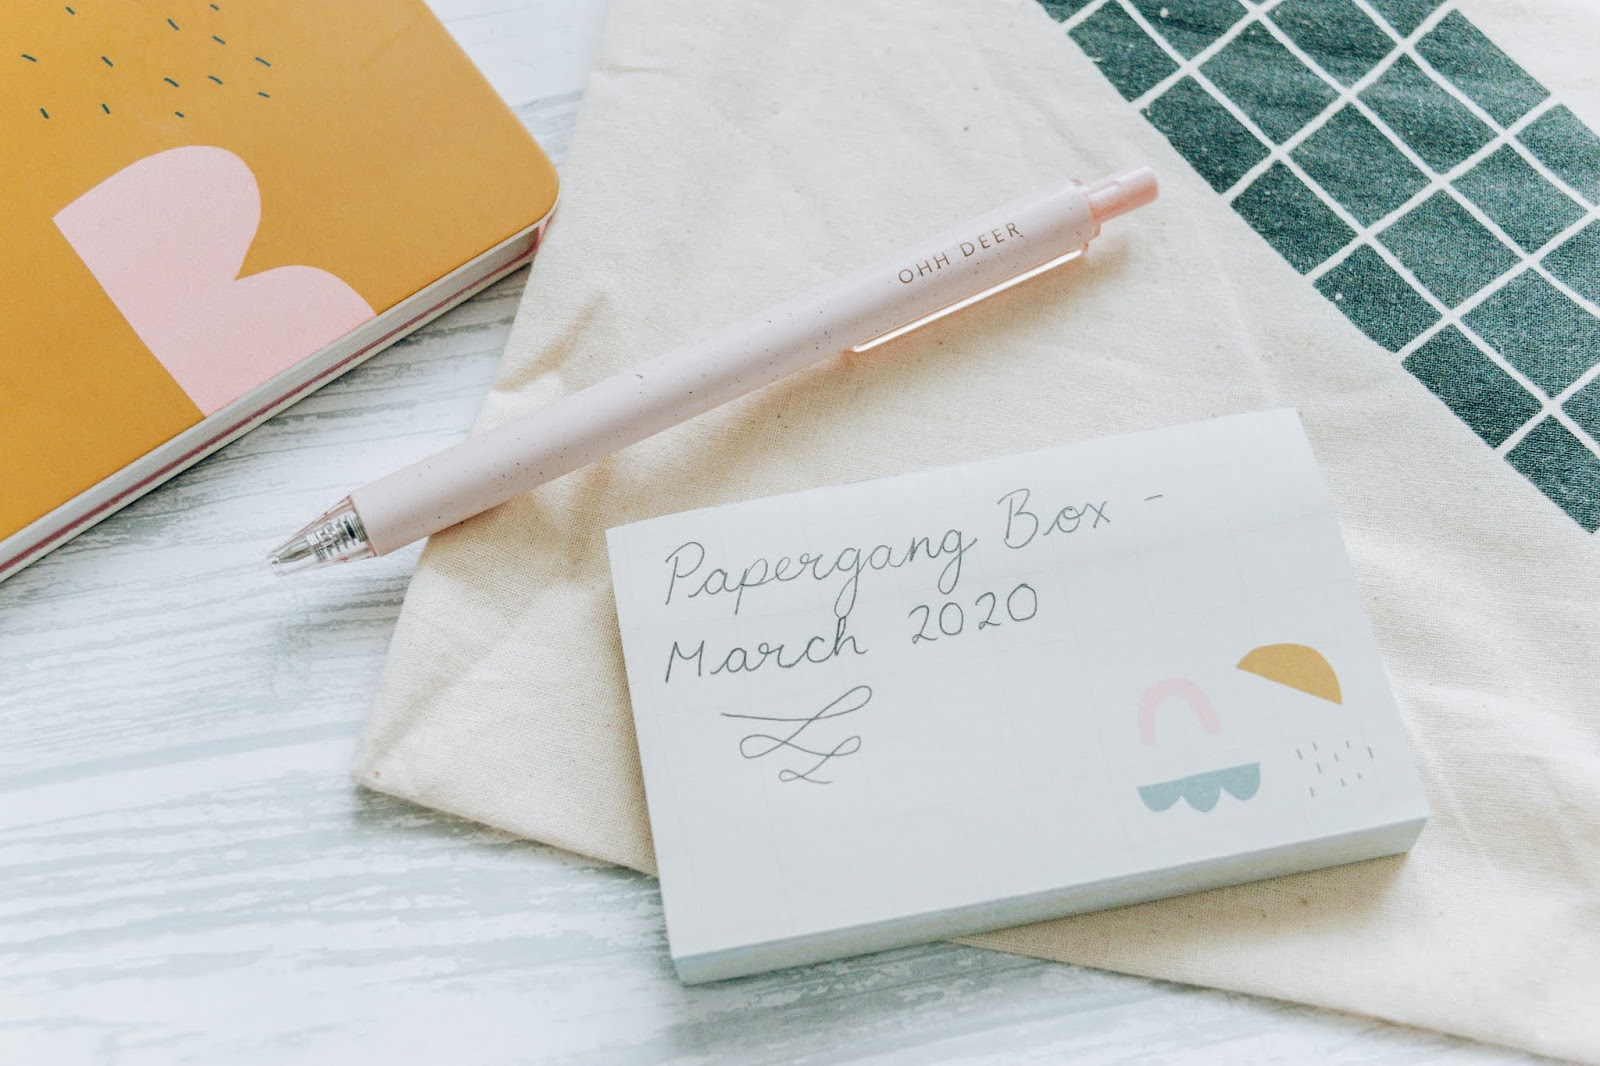 Beige sticky notes with geometric shapes and black writing on with a pink eggshell pen sitting on top.